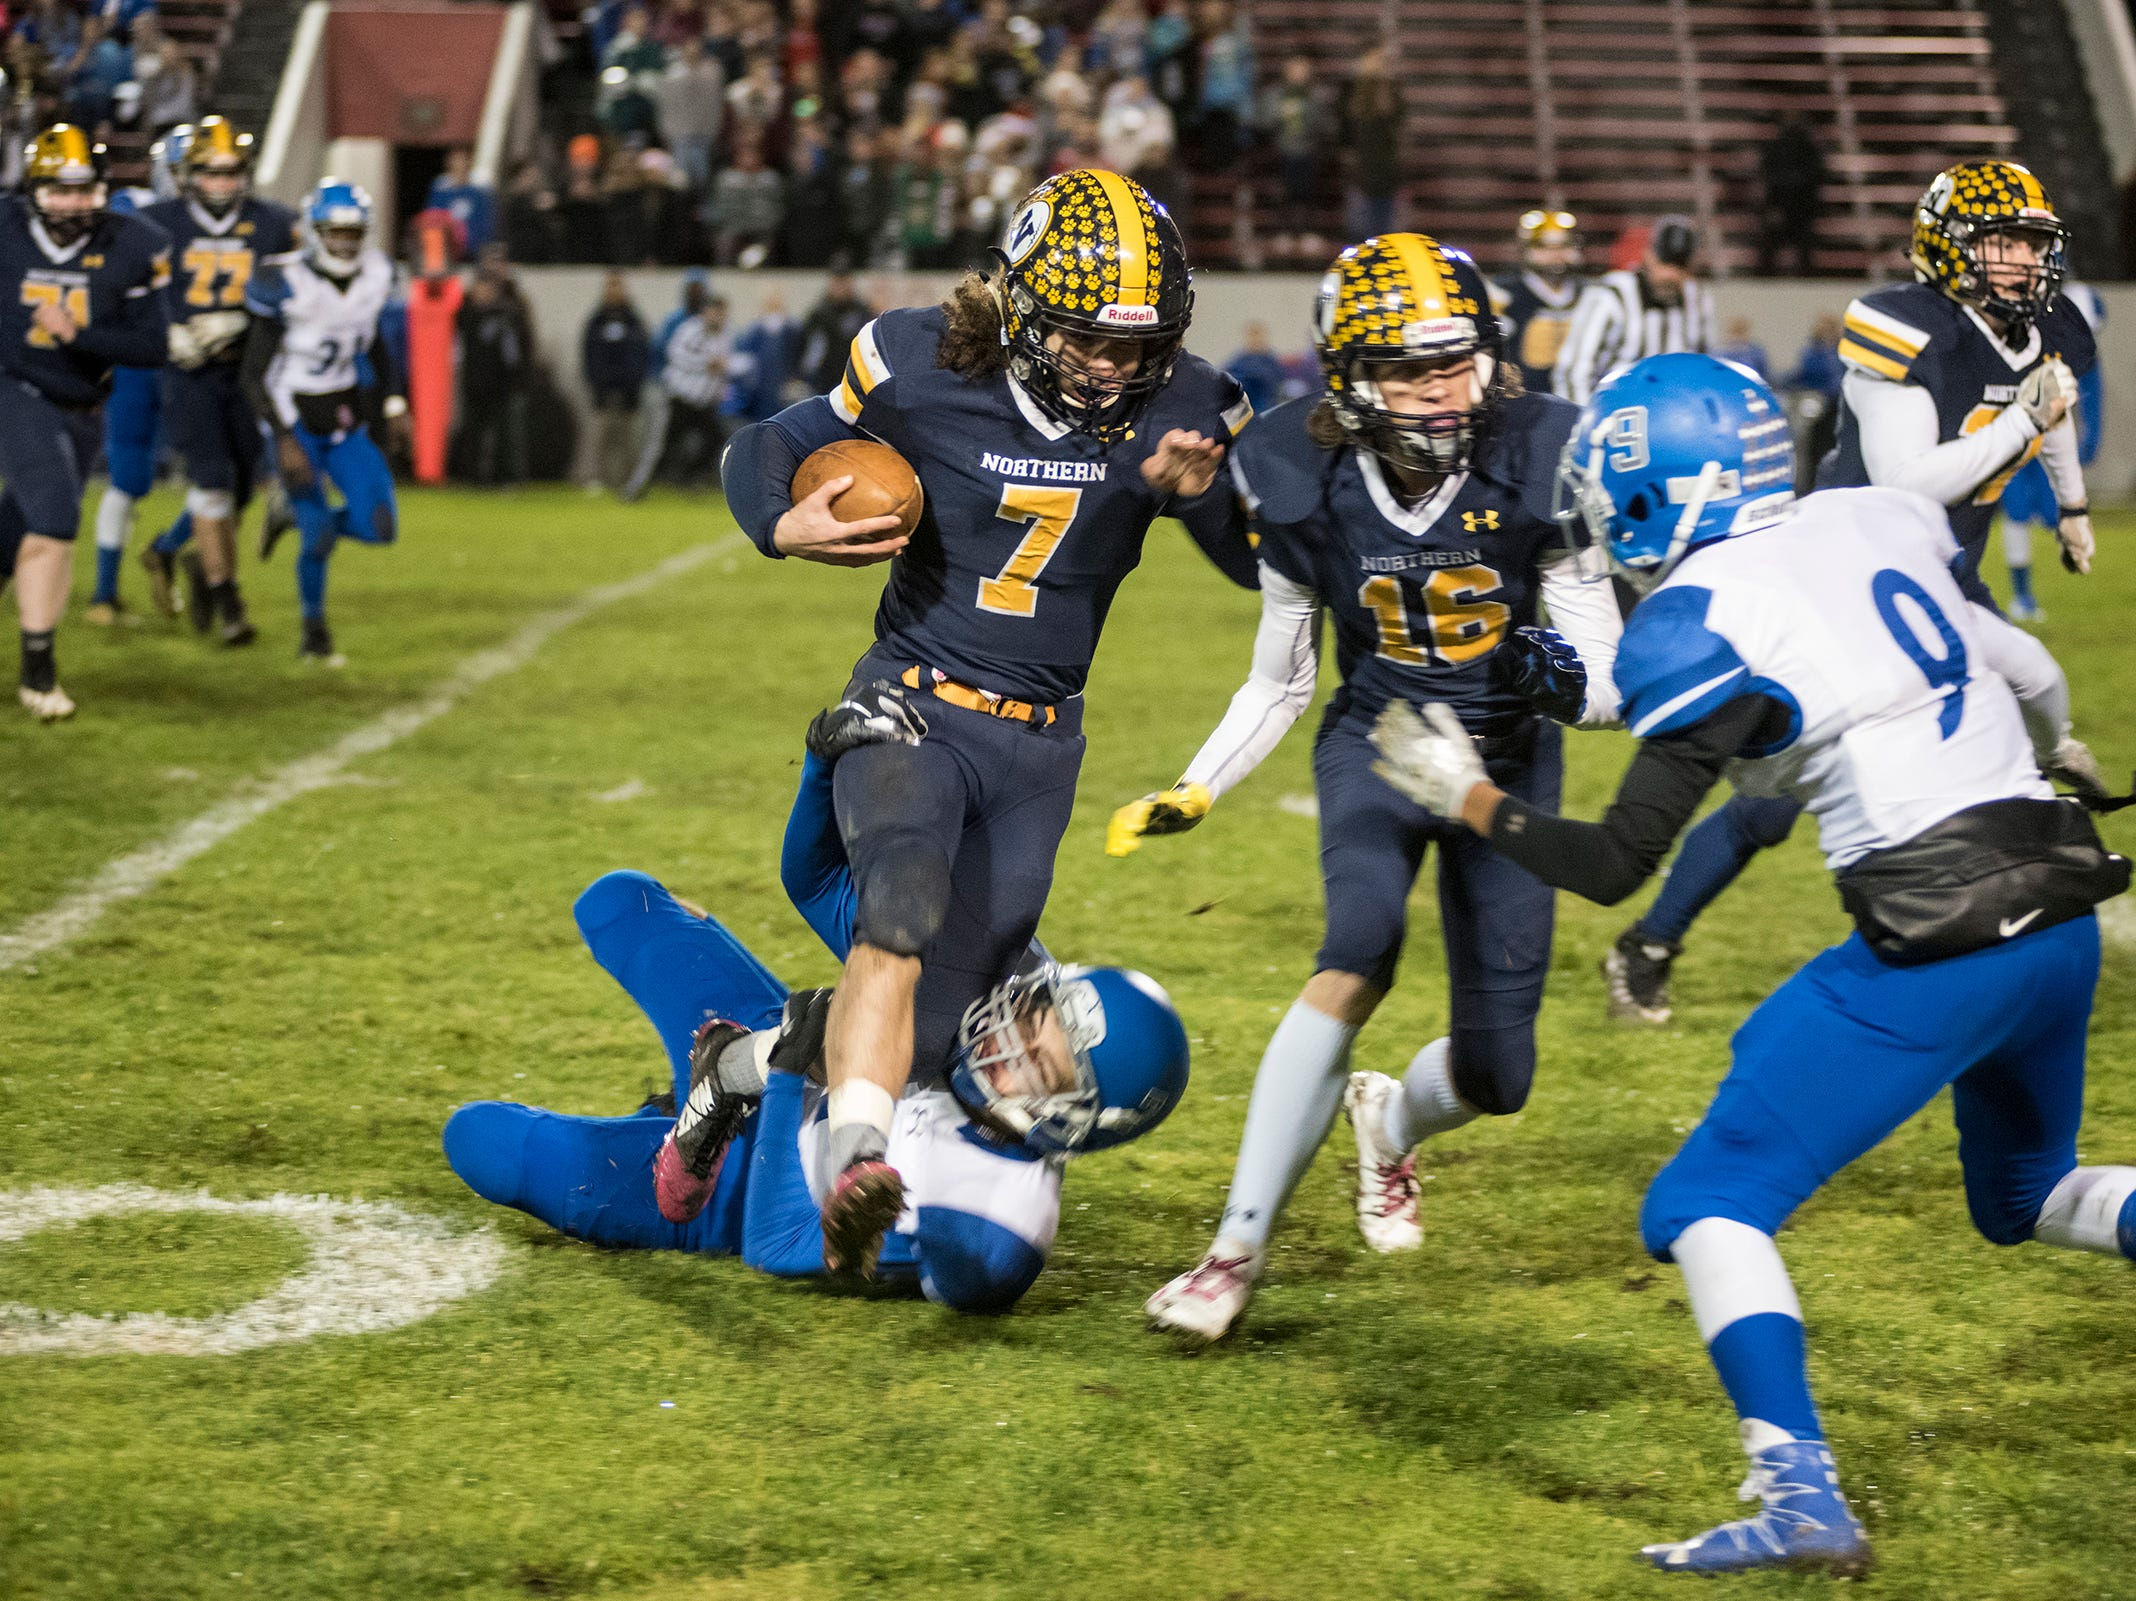 Port Huron Northern High School running back Theo Ellis (7) is tackled by St. Clair Shores Lakeview's Dante Hage during the first quarter of their Division 2 finals match Friday, Nov. 2, 2018 at Memorial Stadium in Port Huron.